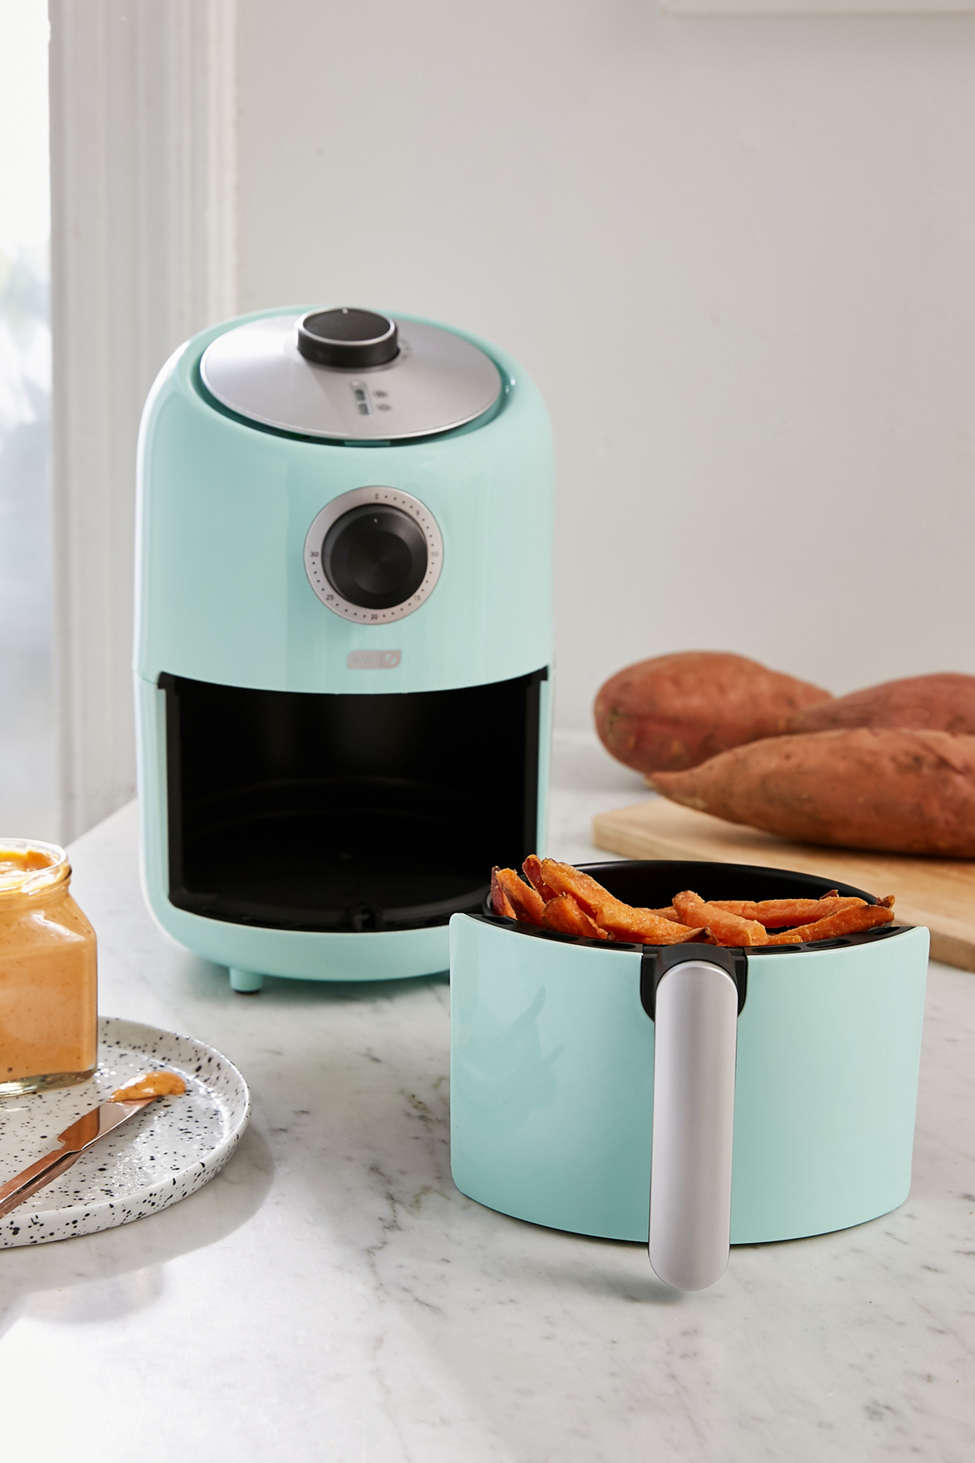 Slide View: 1: Compact Air Fryer